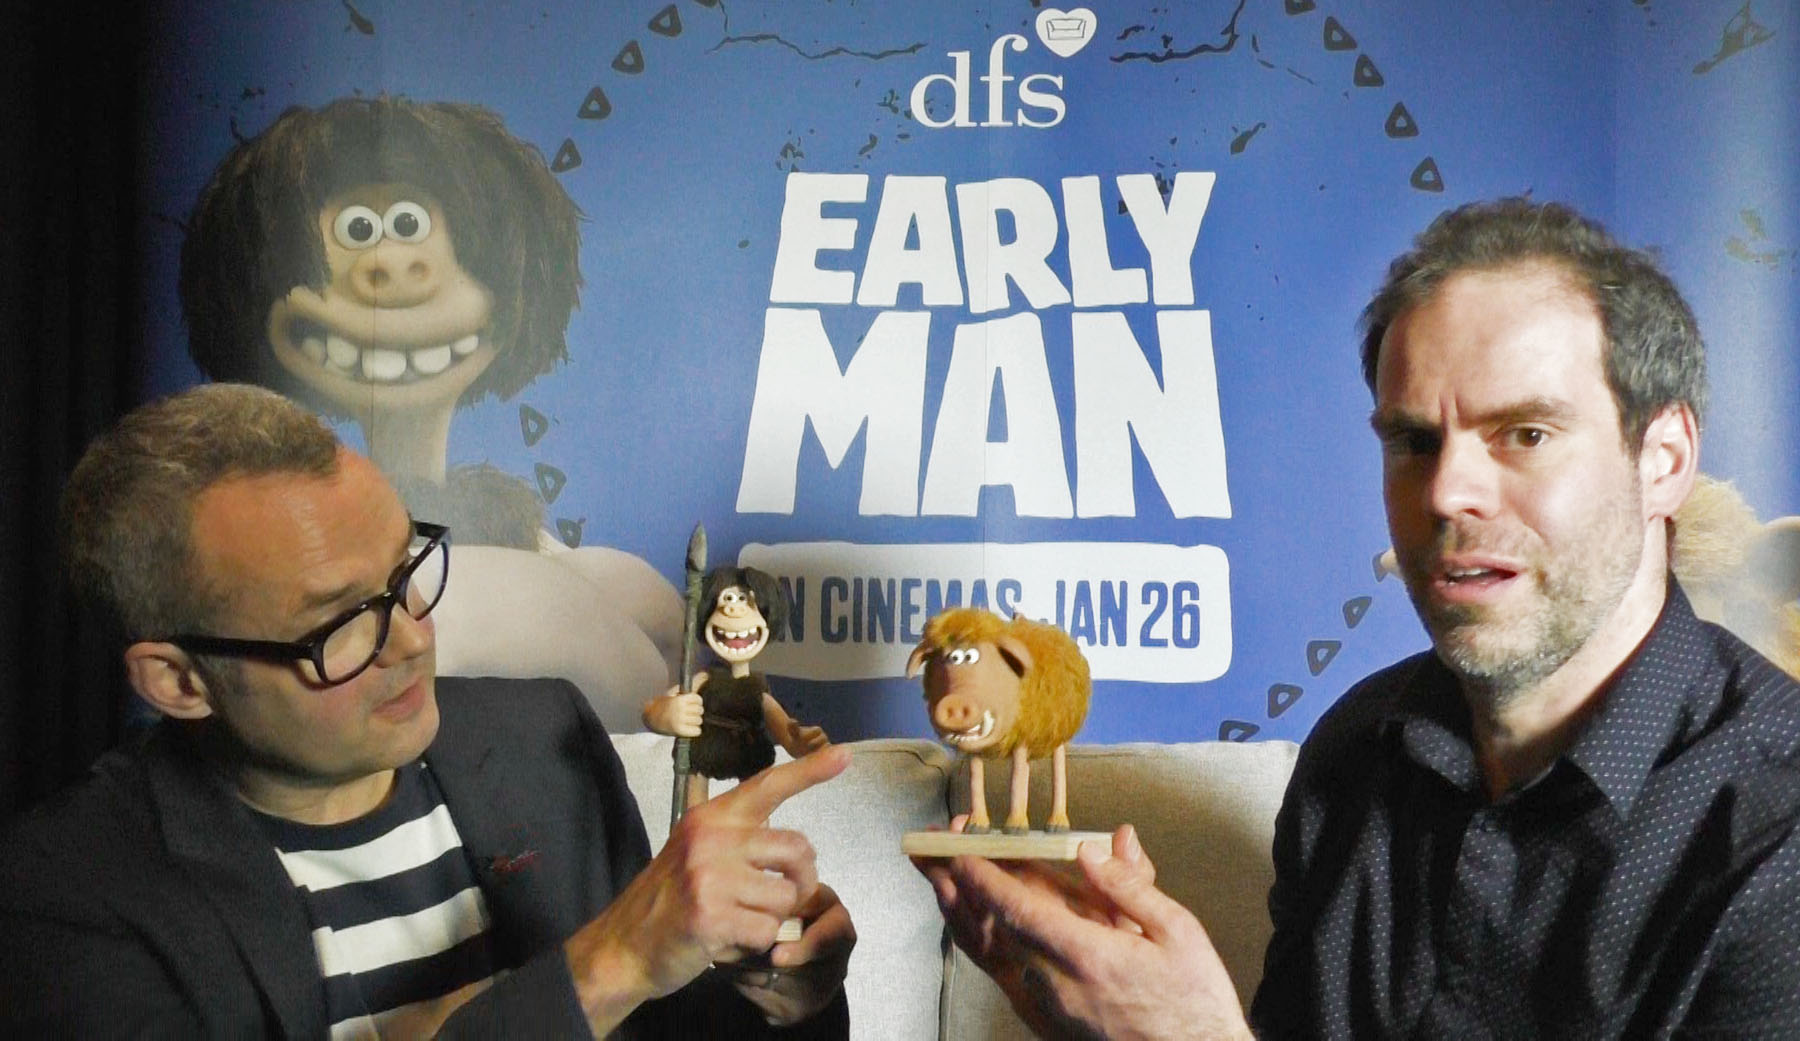 Early Man preview with DFS